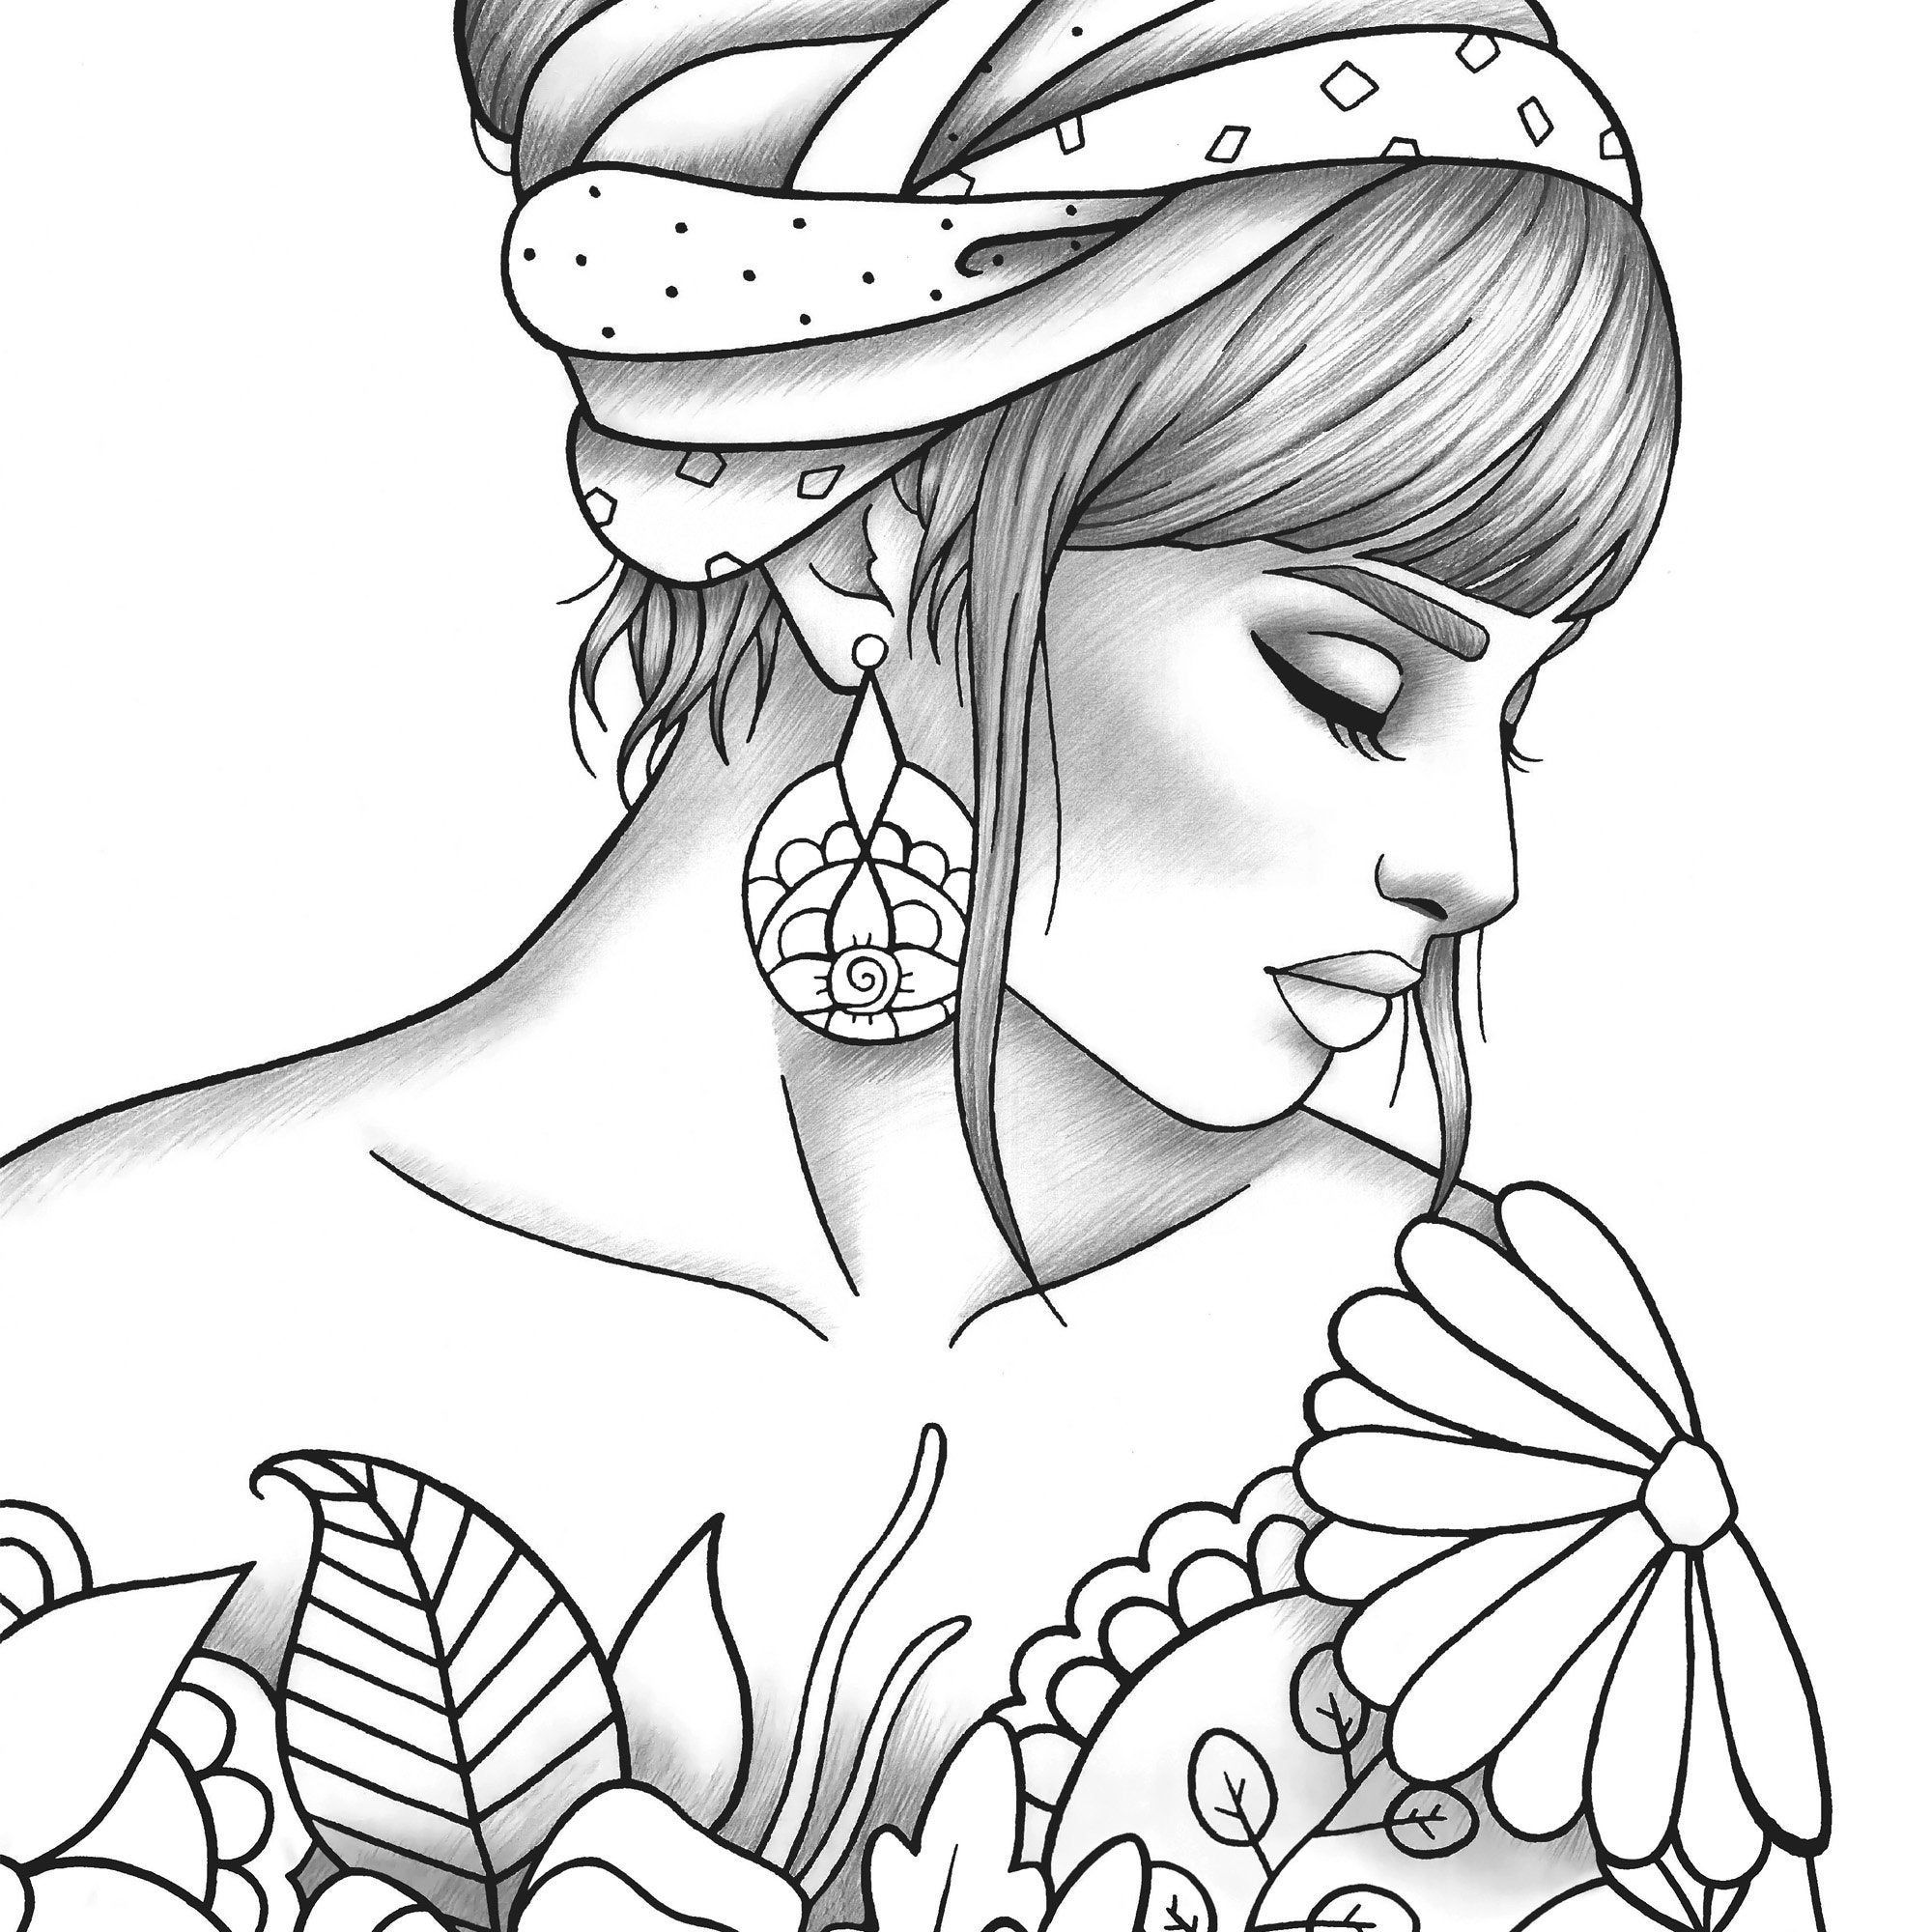 printable colouring pages for girls manga coloring pages to download and print for free printable colouring pages for girls